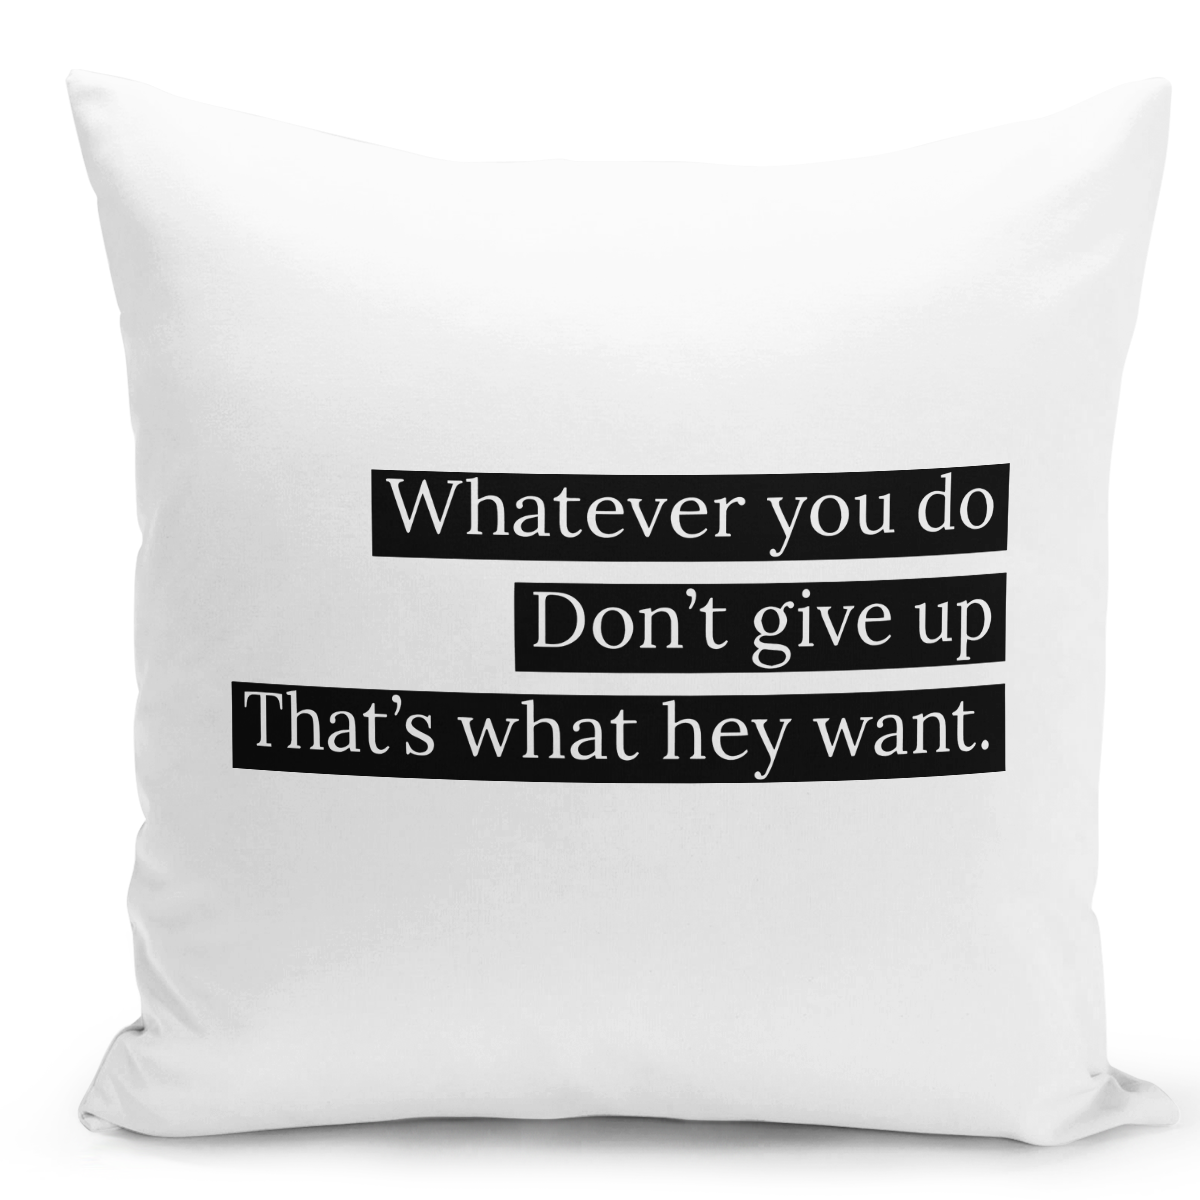 16x16-inch-Throw-Pillow-for-Home-Decor-with-Stuffing-Whatever-You-Do-Dont-Give-Up-Inspirational-Quote-Pillow-